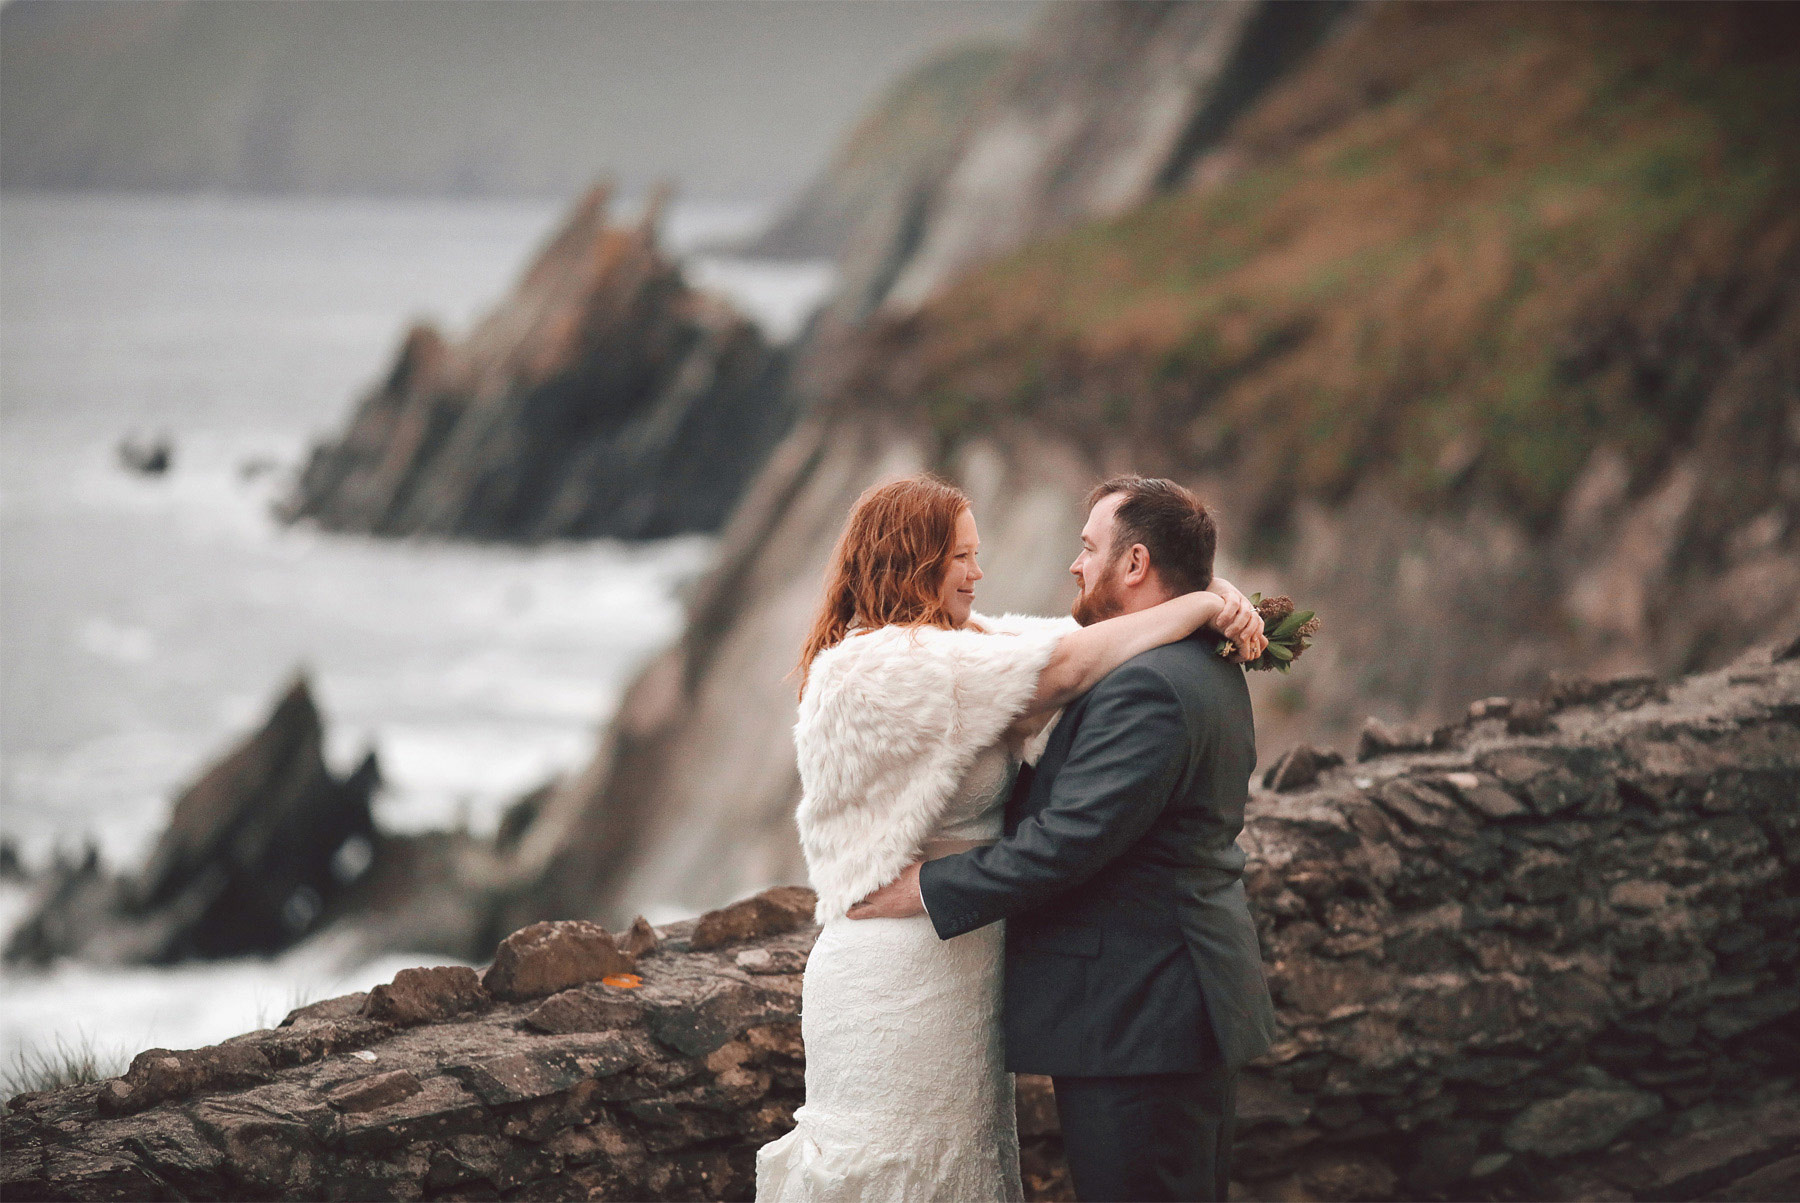 15-Kilarney-Ireland-Wedding-Photographer-by-Andrew-Vick-Photography-Fall-Autumn-Destination-Bride-Groom-Village-Landscape-Countryside-Ocean-Embrace-Vintage-Becca-and-Donal.jpg